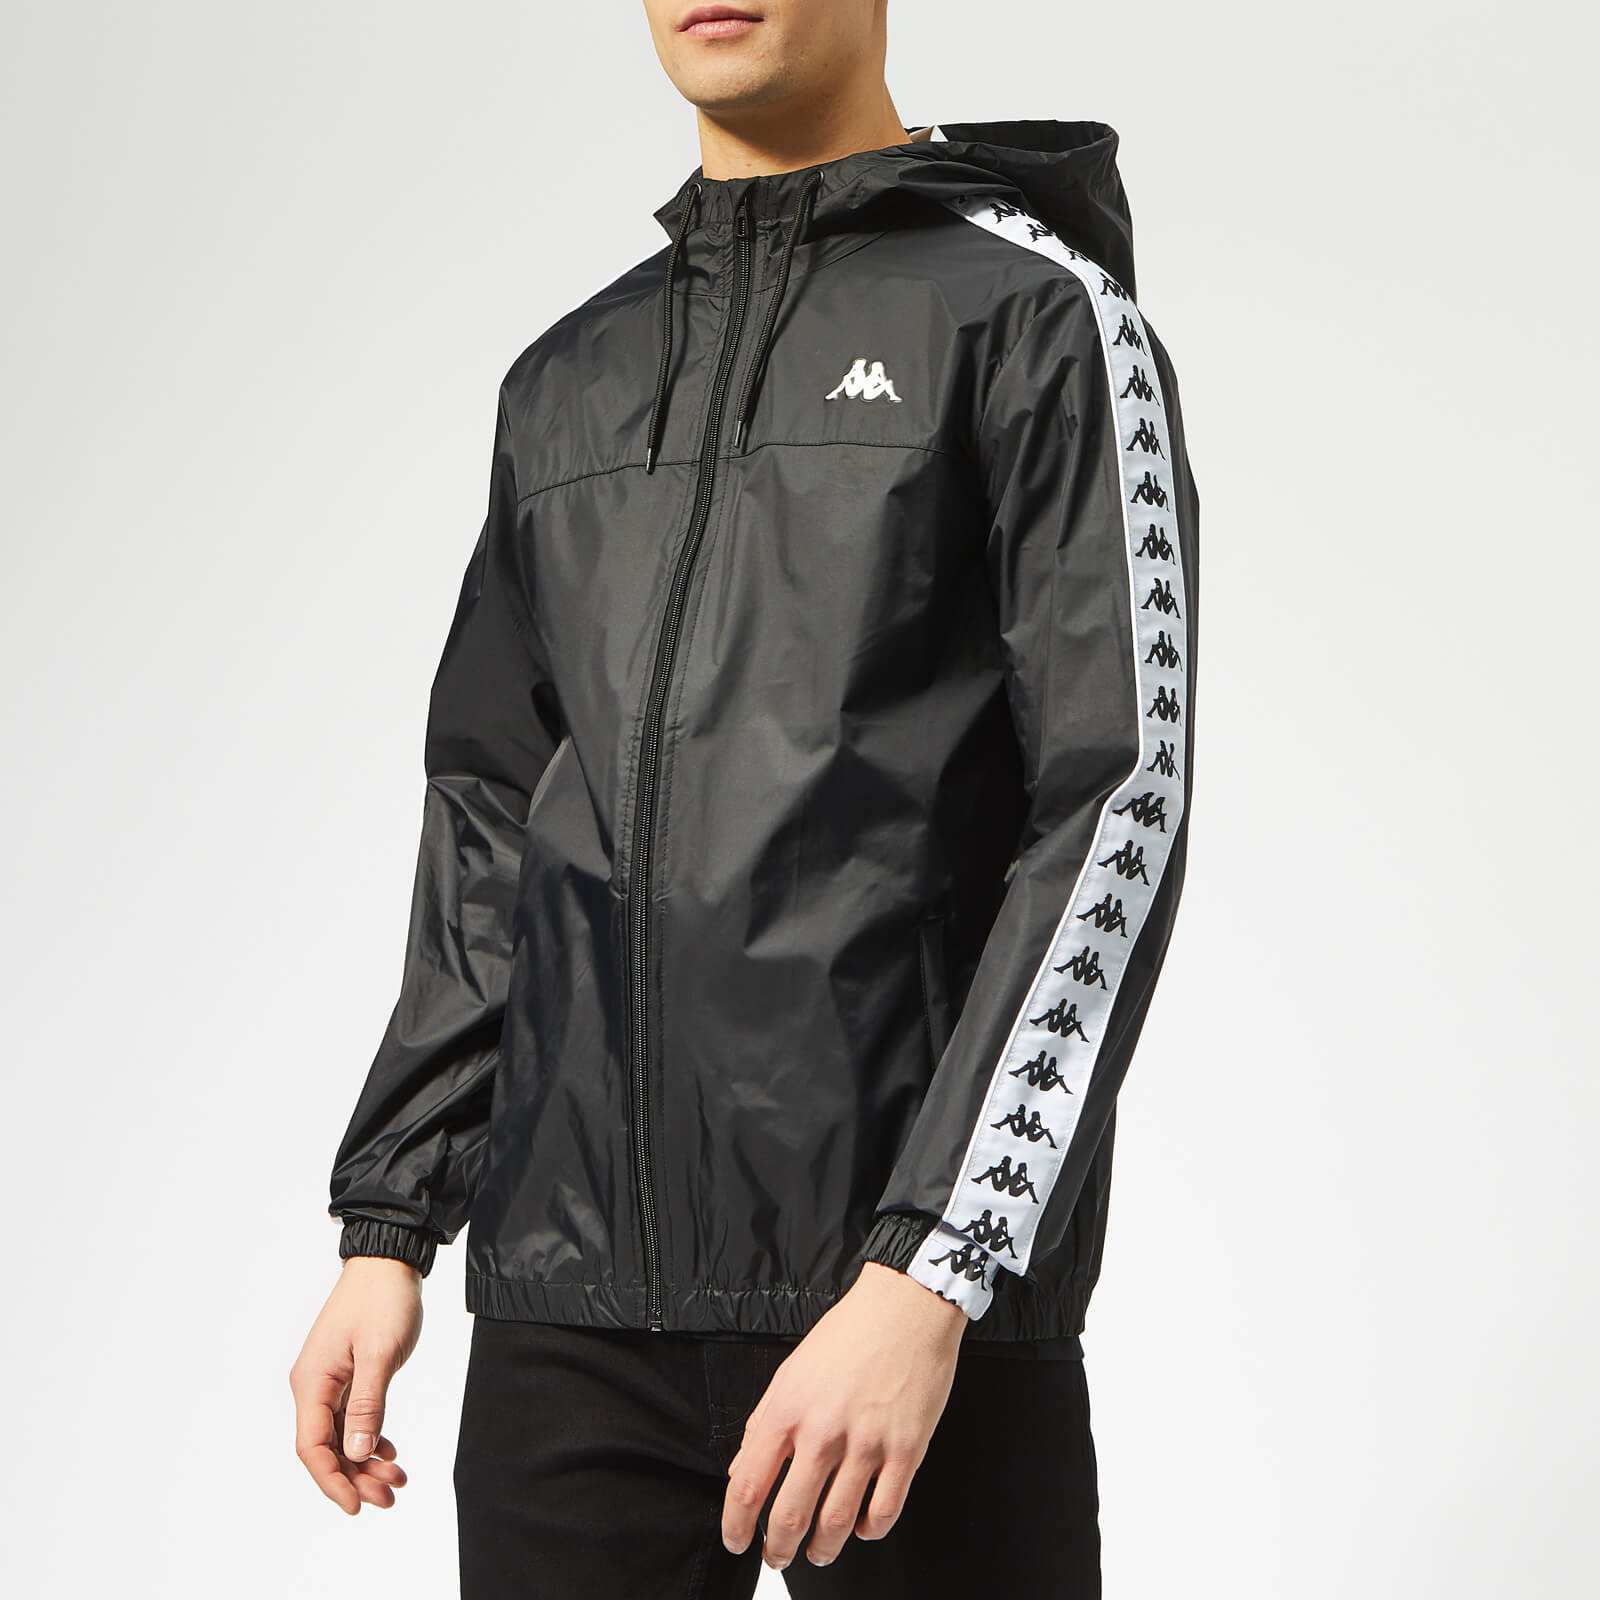 d4c09cb9b Kappa Men's Zip Through Rain Jacket - Black Clothing | TheHut.com